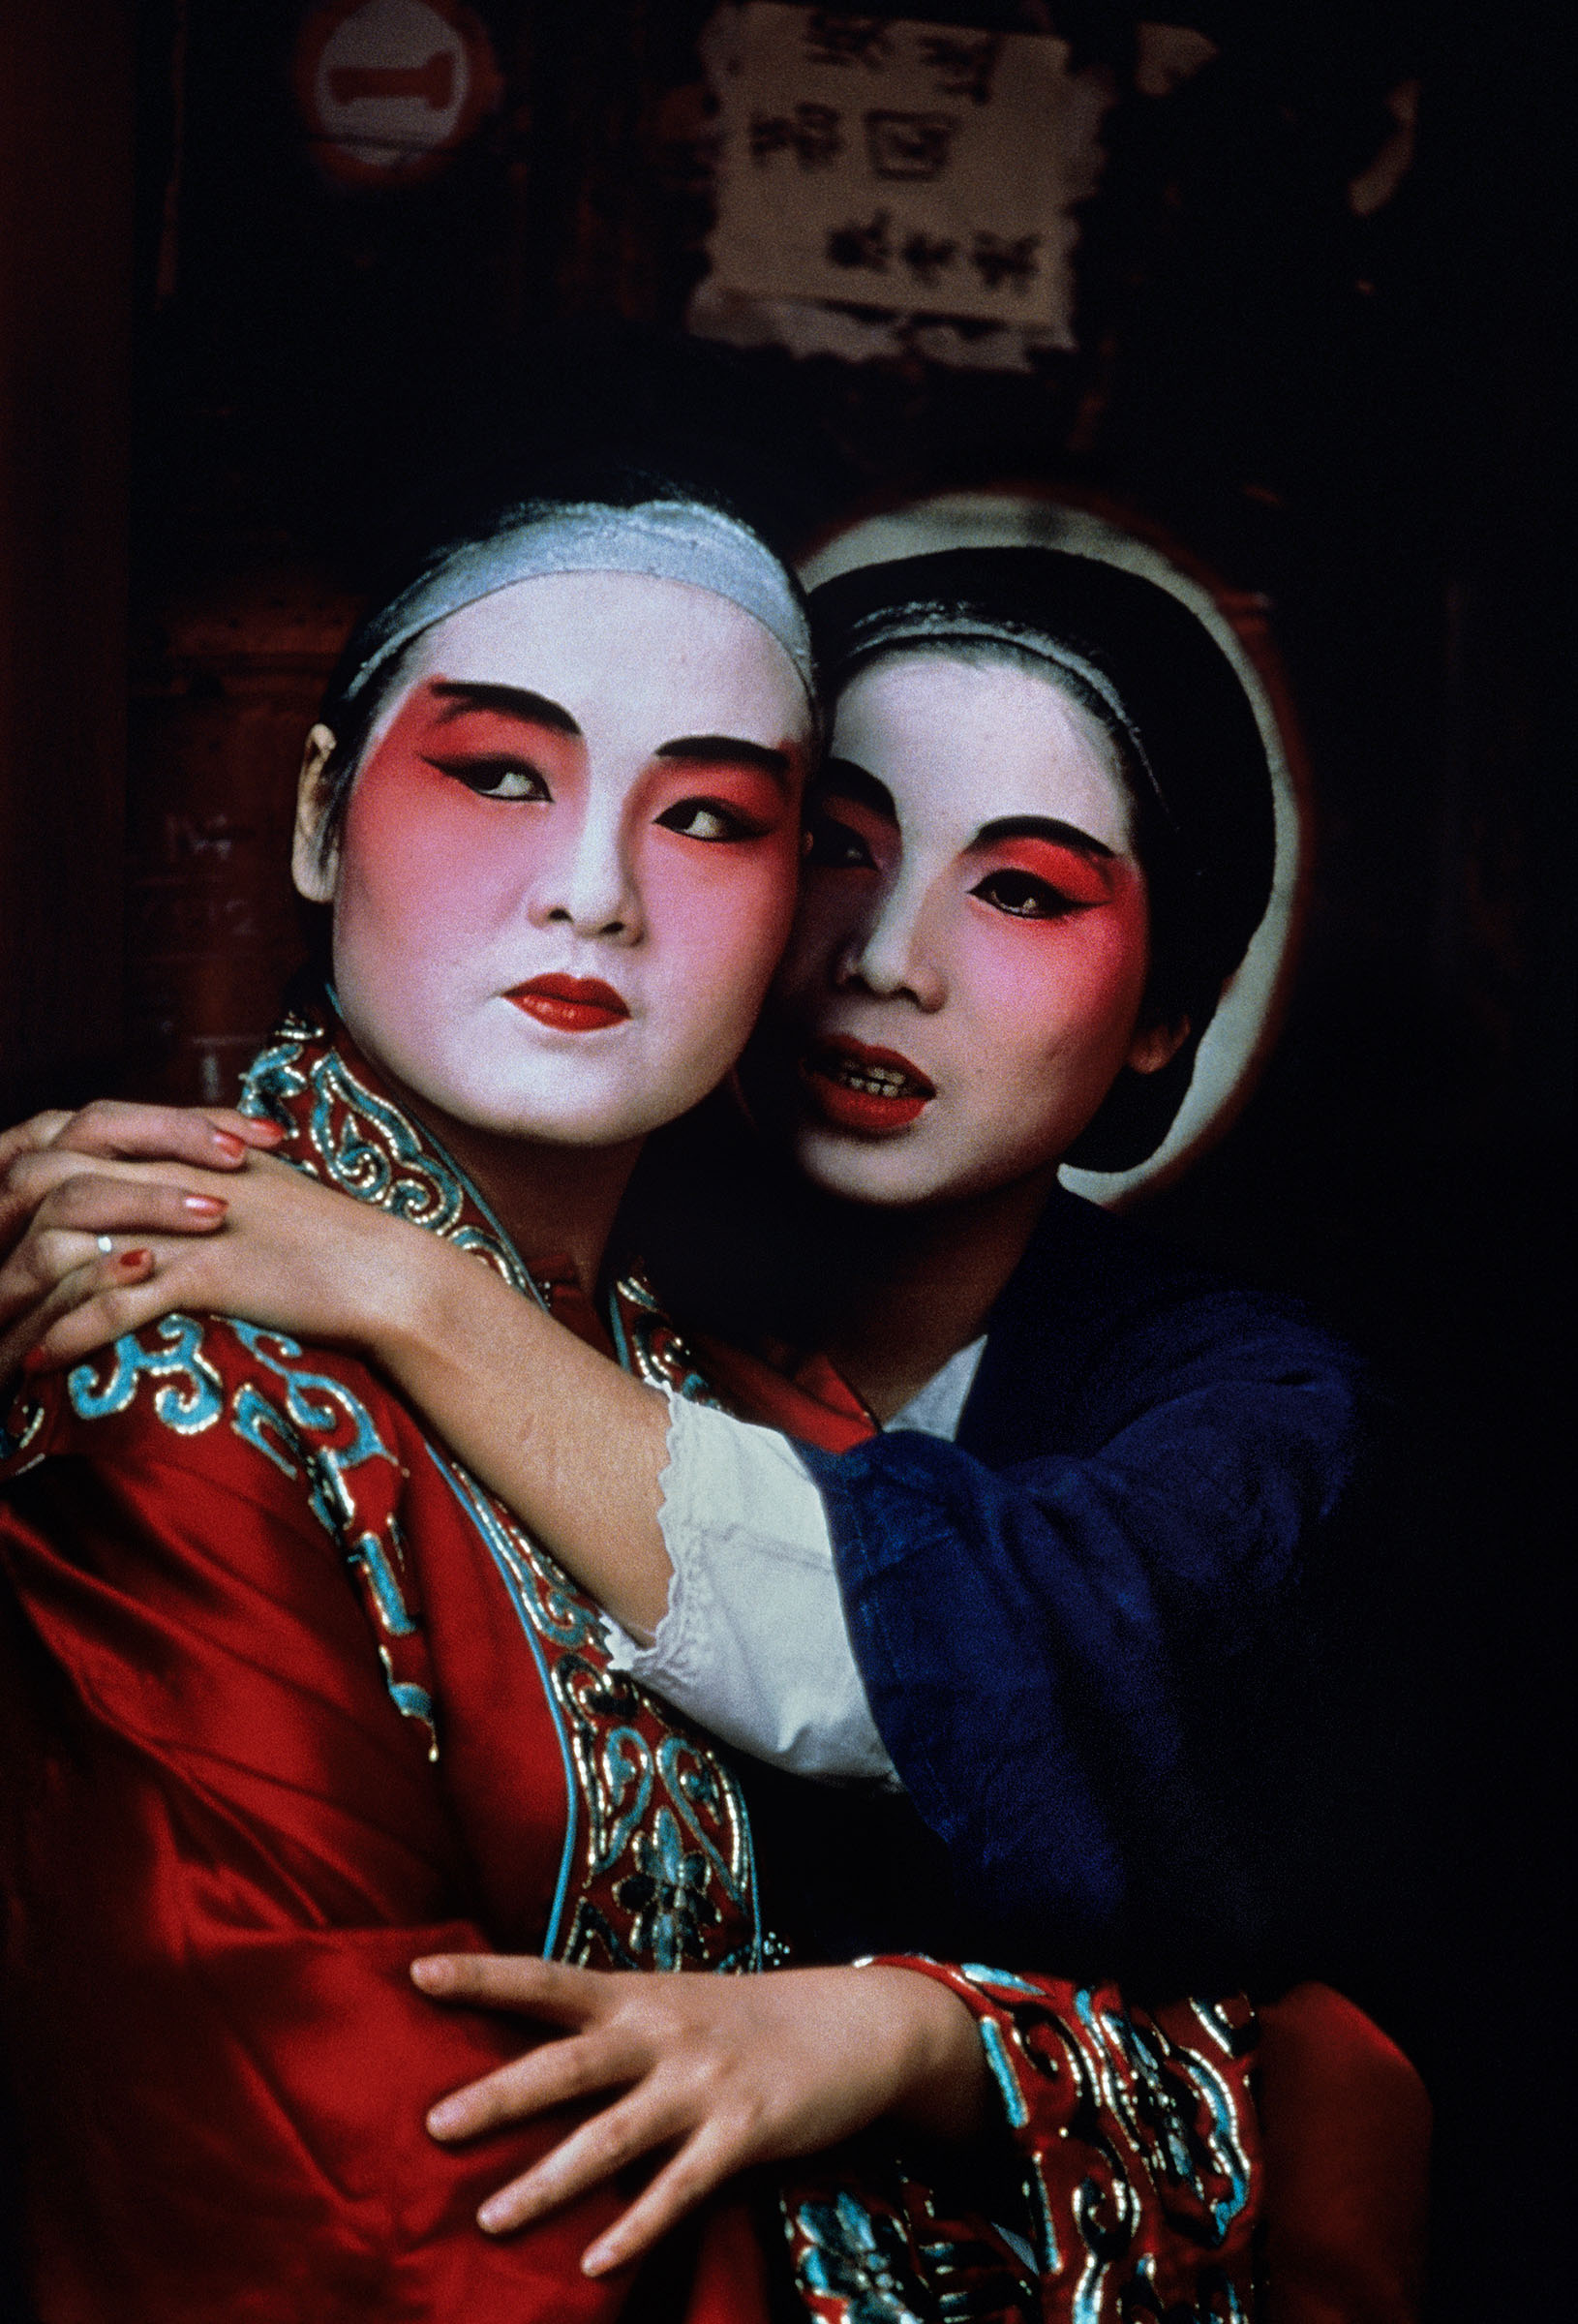 Icons le fotografie di steve mccurry in mostra a pavia for Steve mccurry icons